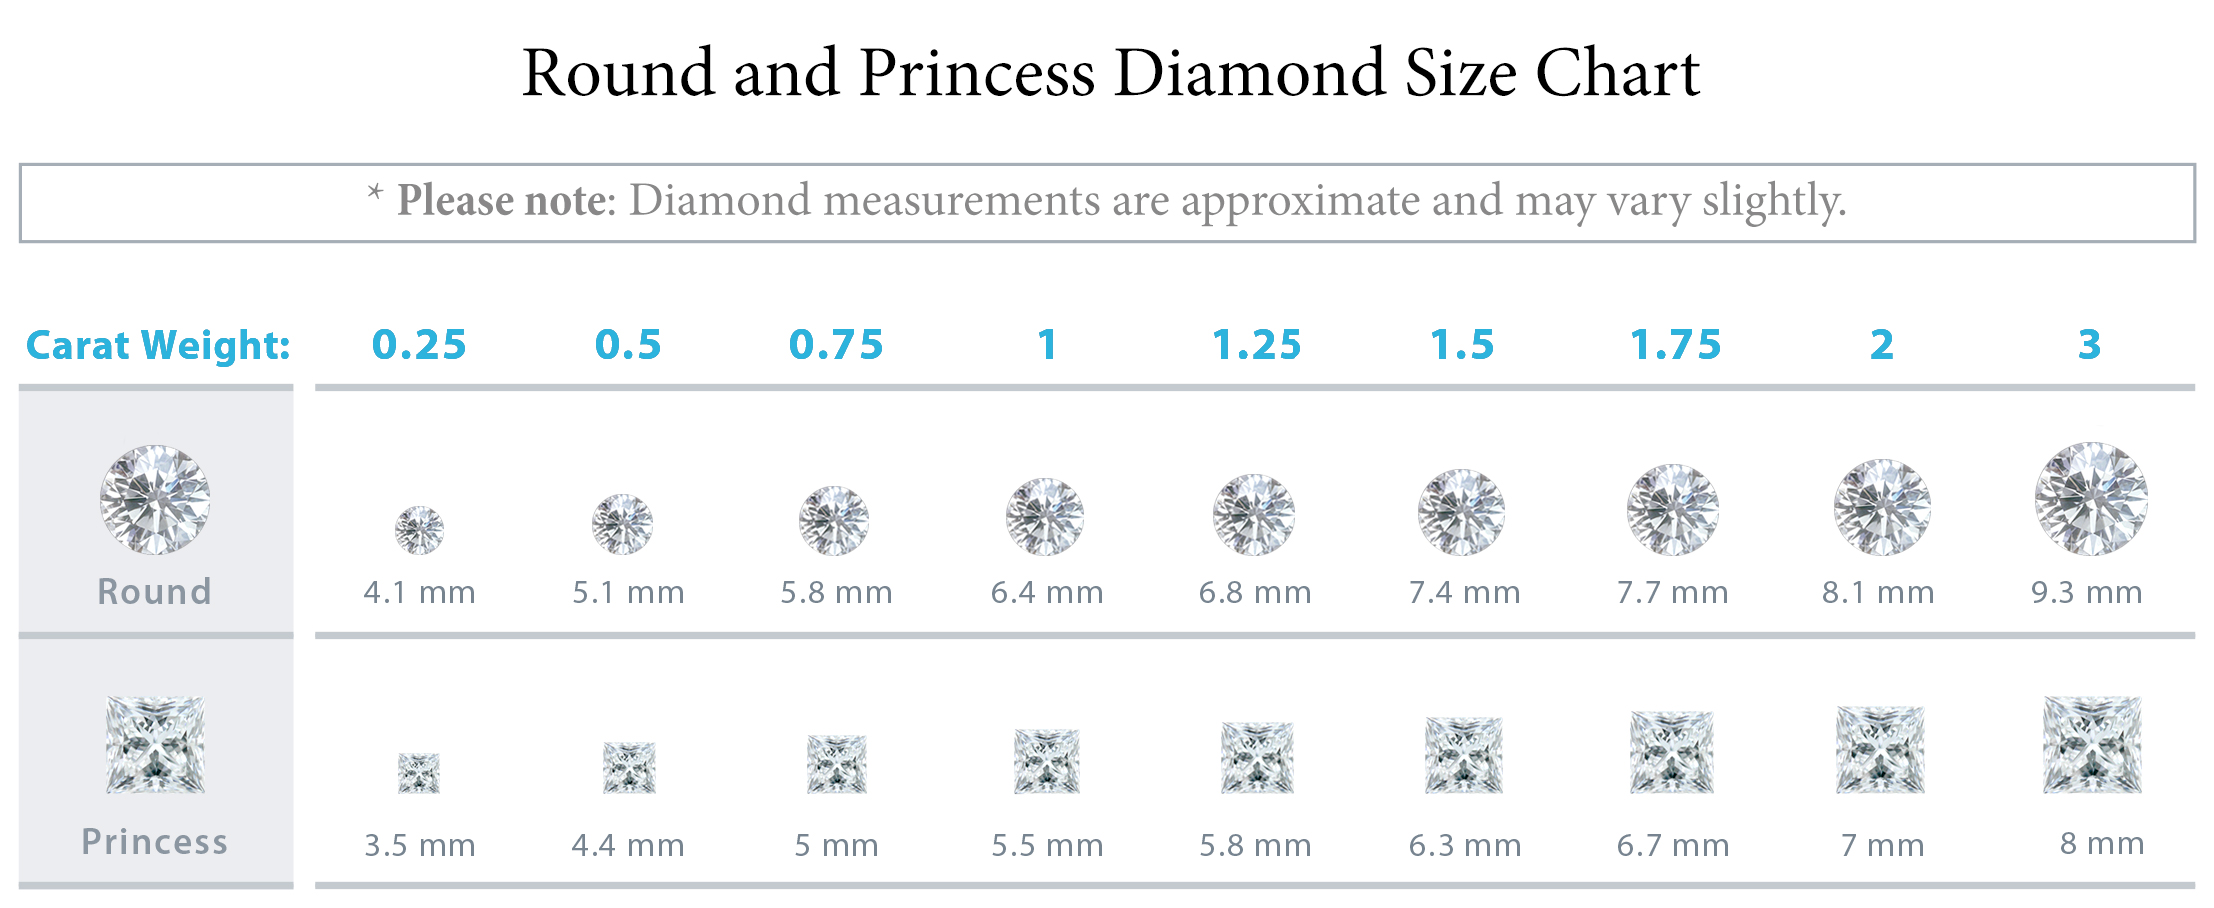 diamond a choose inclusions chart pages are and natural under heat how clarity of s formation deep earth blemishes extreme dimond results pressure the beaudelljewellery to within